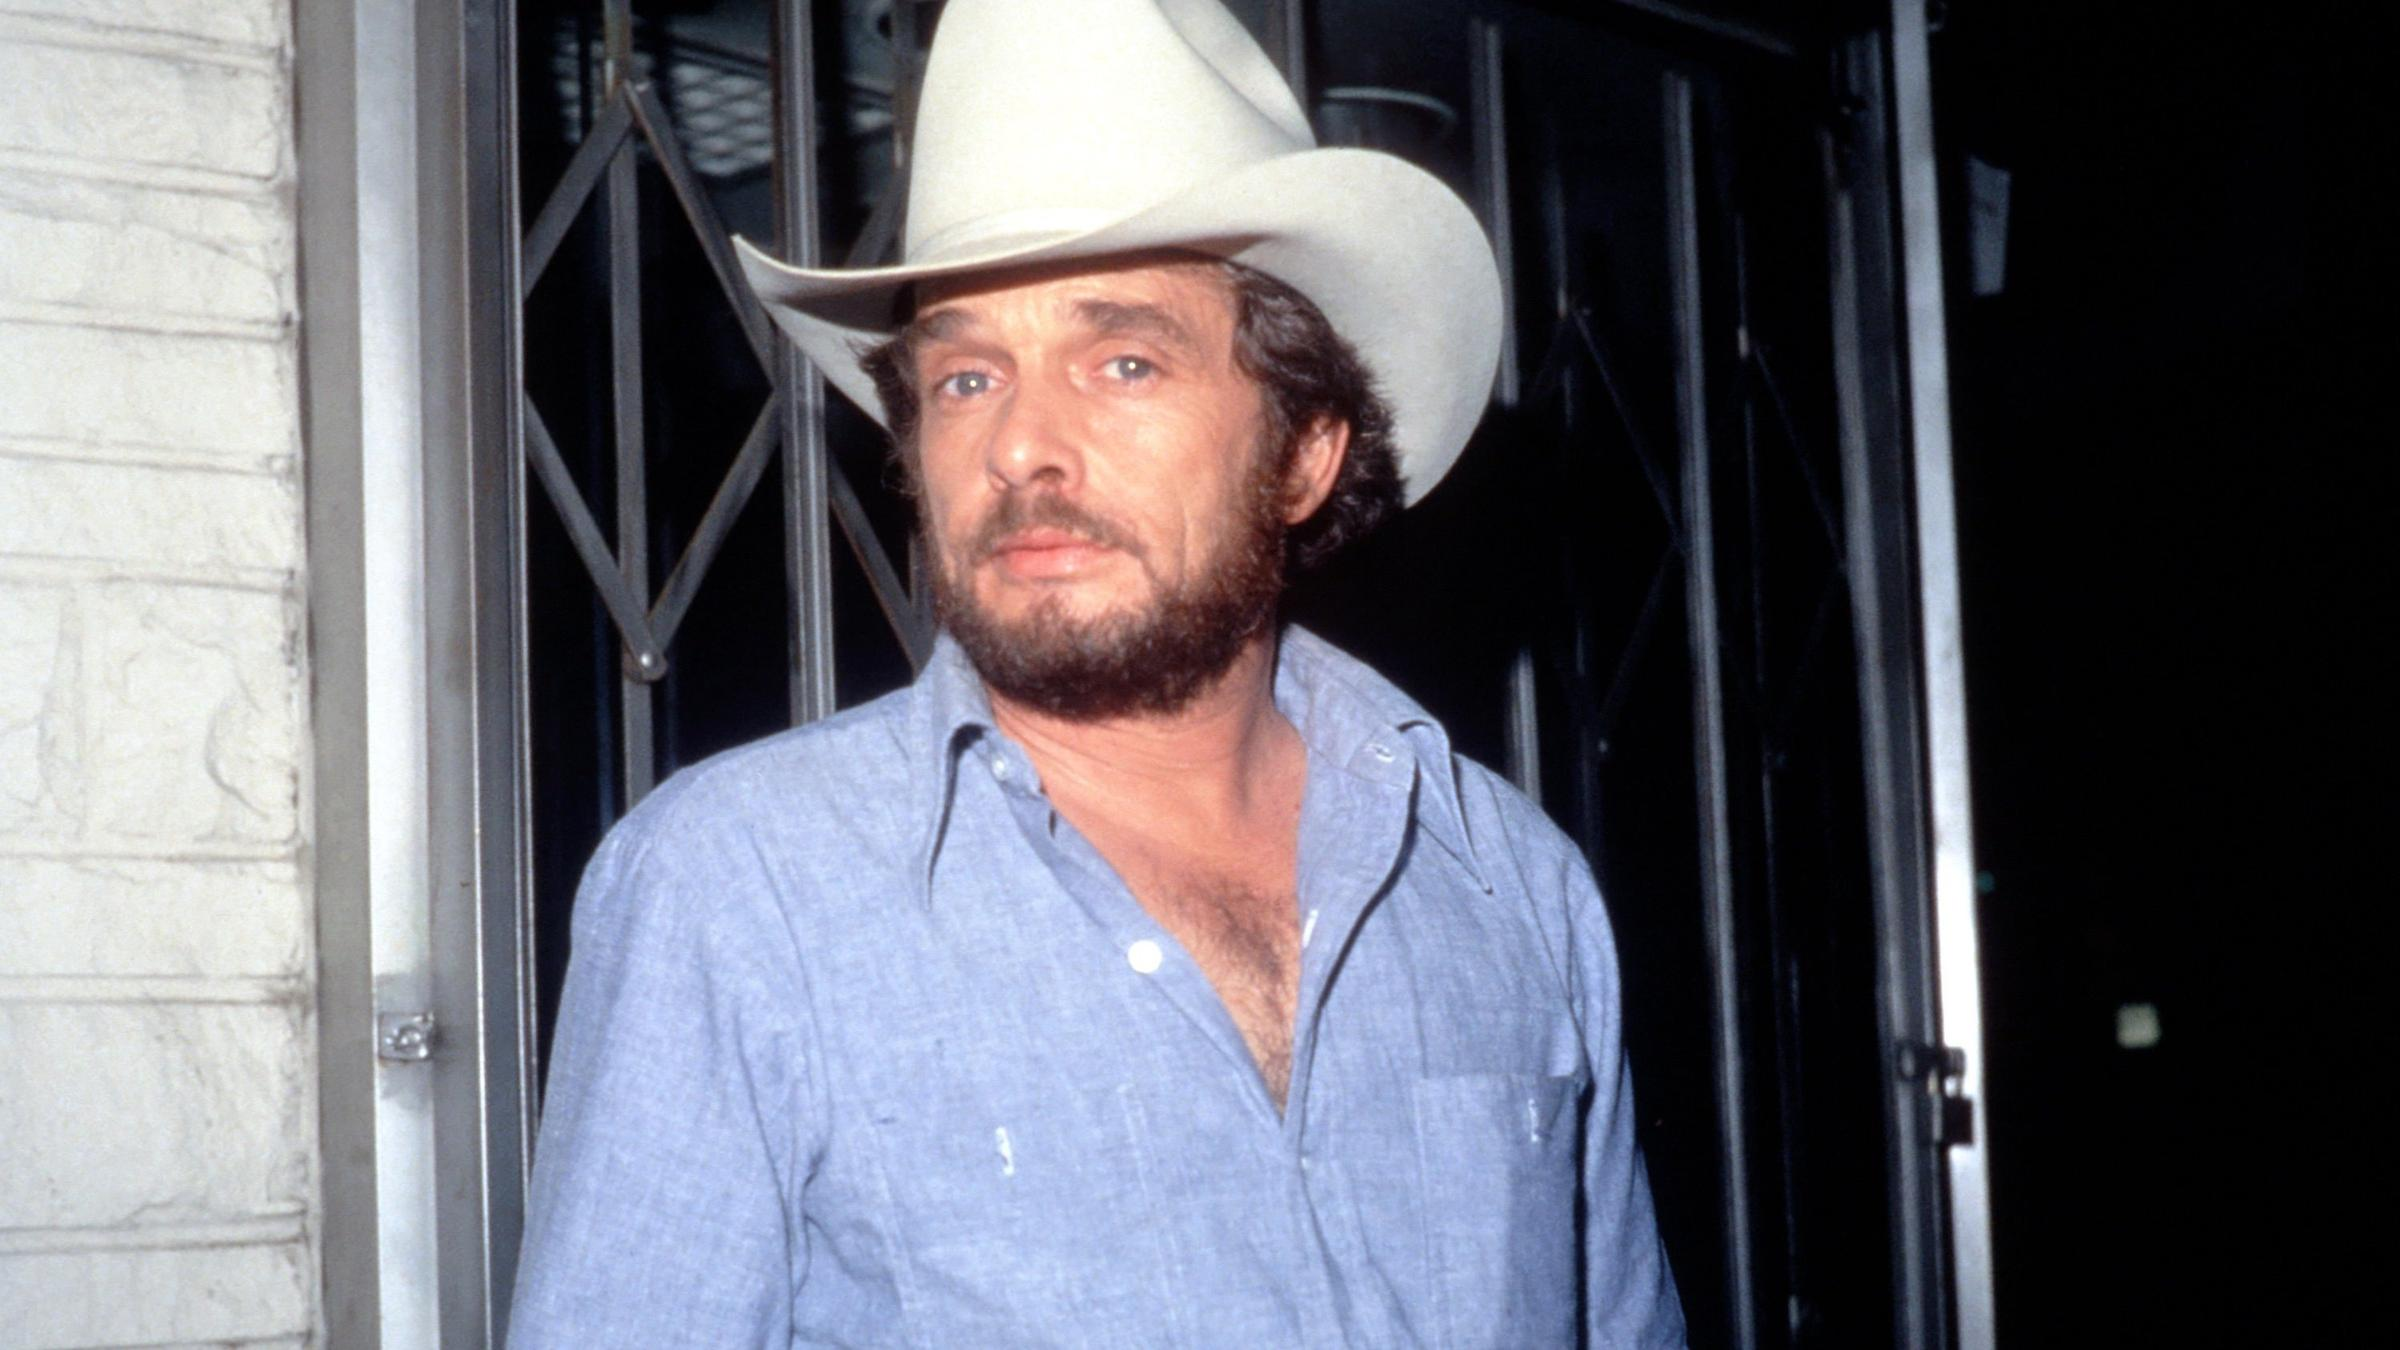 Merle Haggard's Son, Ben, Writes Loving Post About His Dad